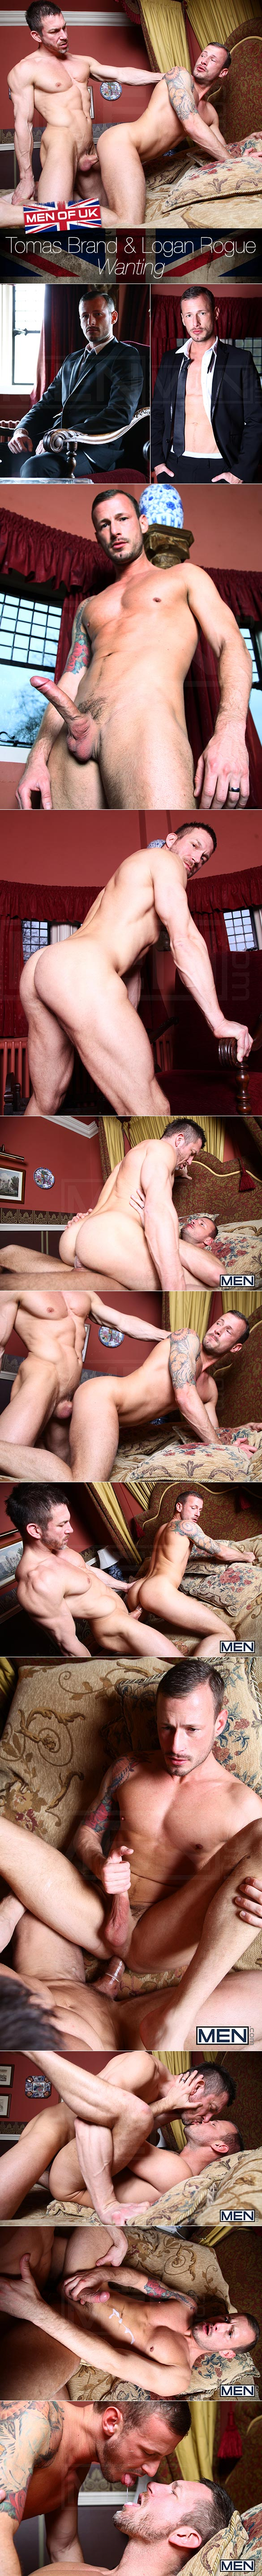 "Men.com: Tomas Brand fucks Logan Rogue in ""Wanting"""